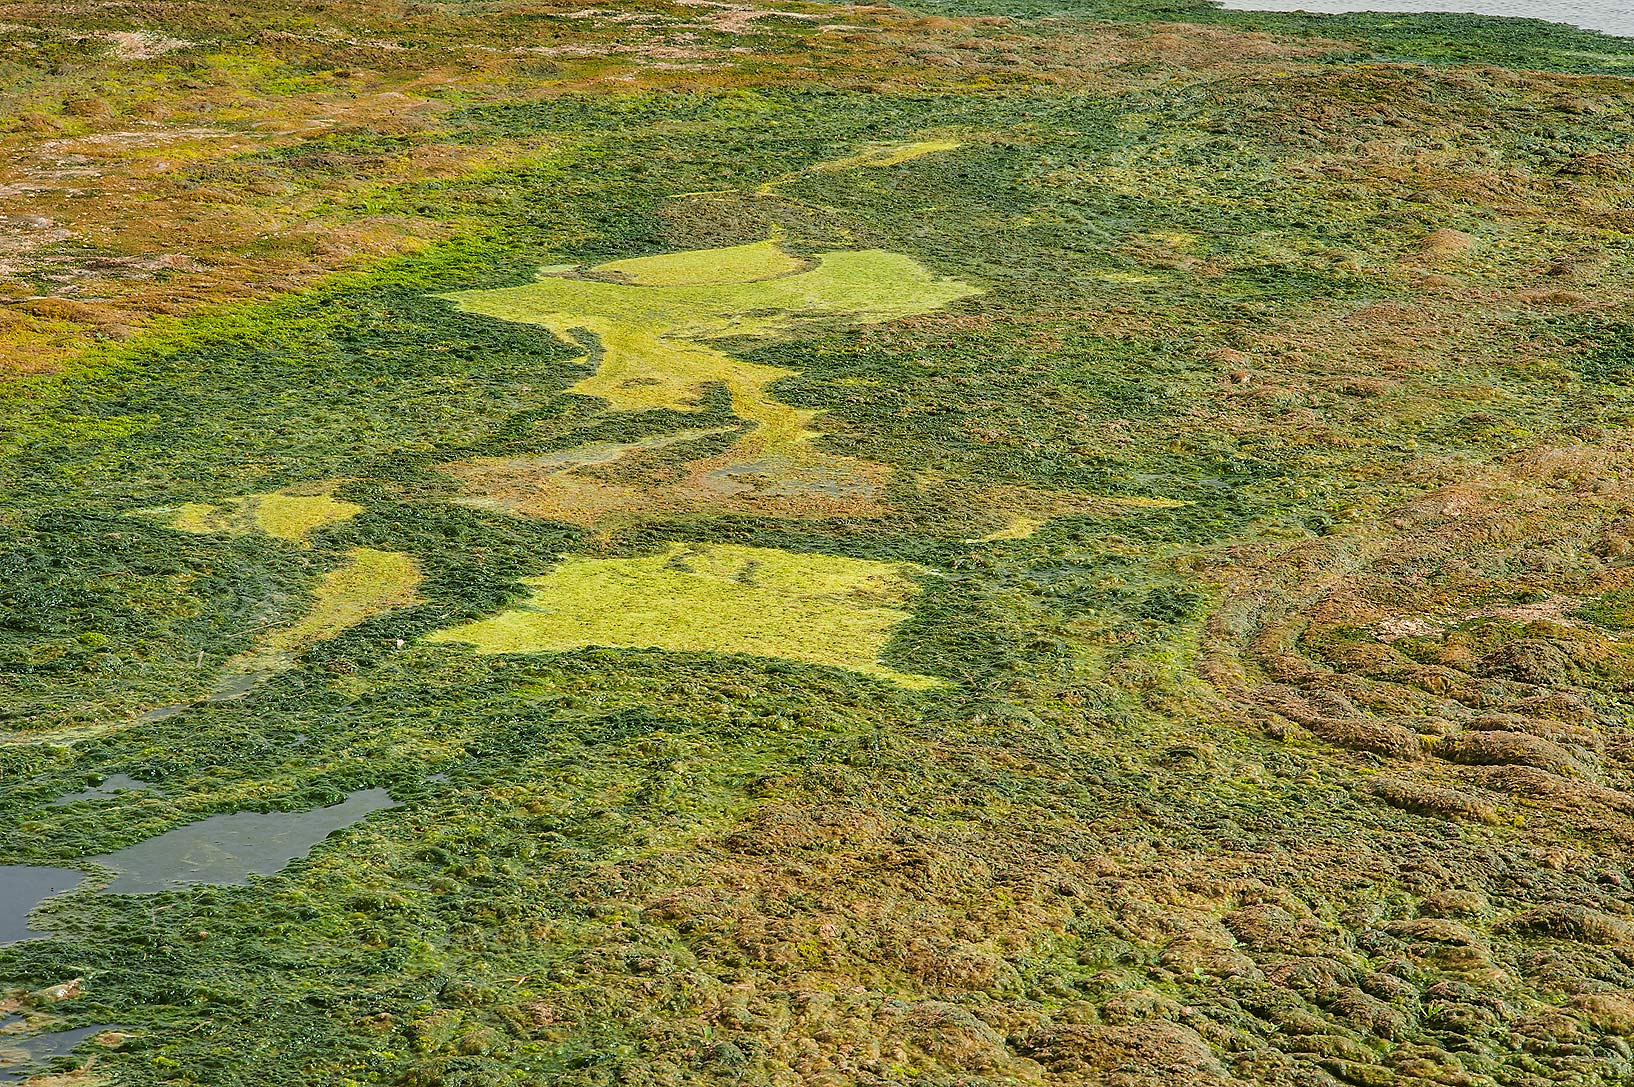 Green algae mats in a pond of Green Circles...in Irkhaya (Irkaya) Farms. Qatar